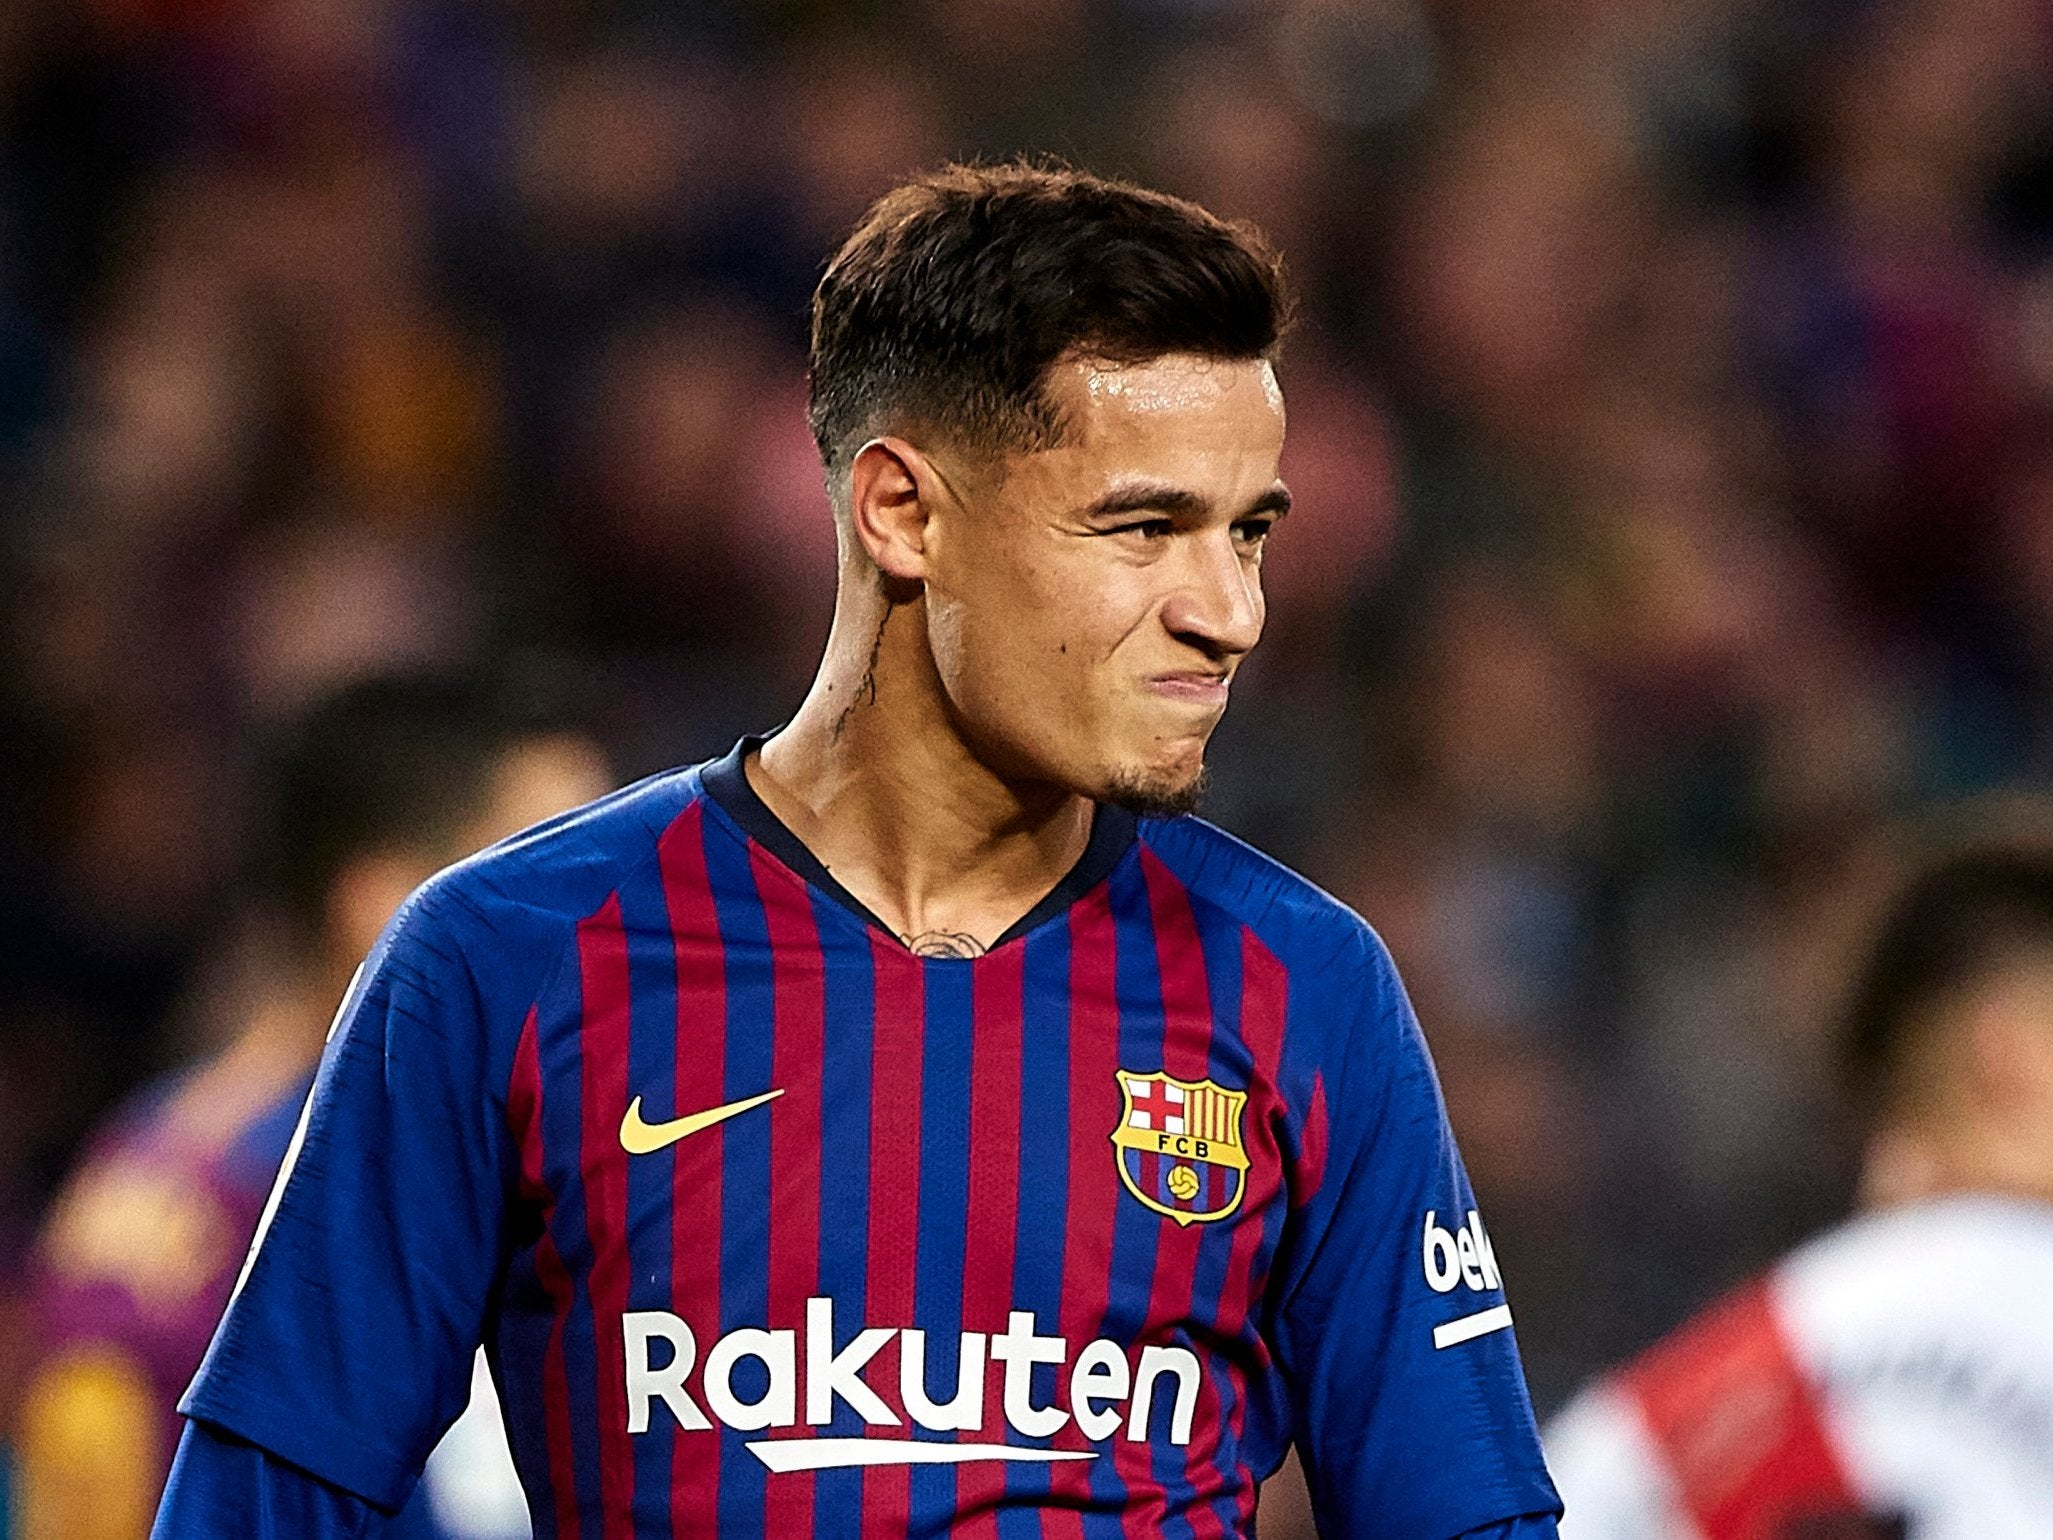 Philippe Coutinho backed by teammates after fans boo